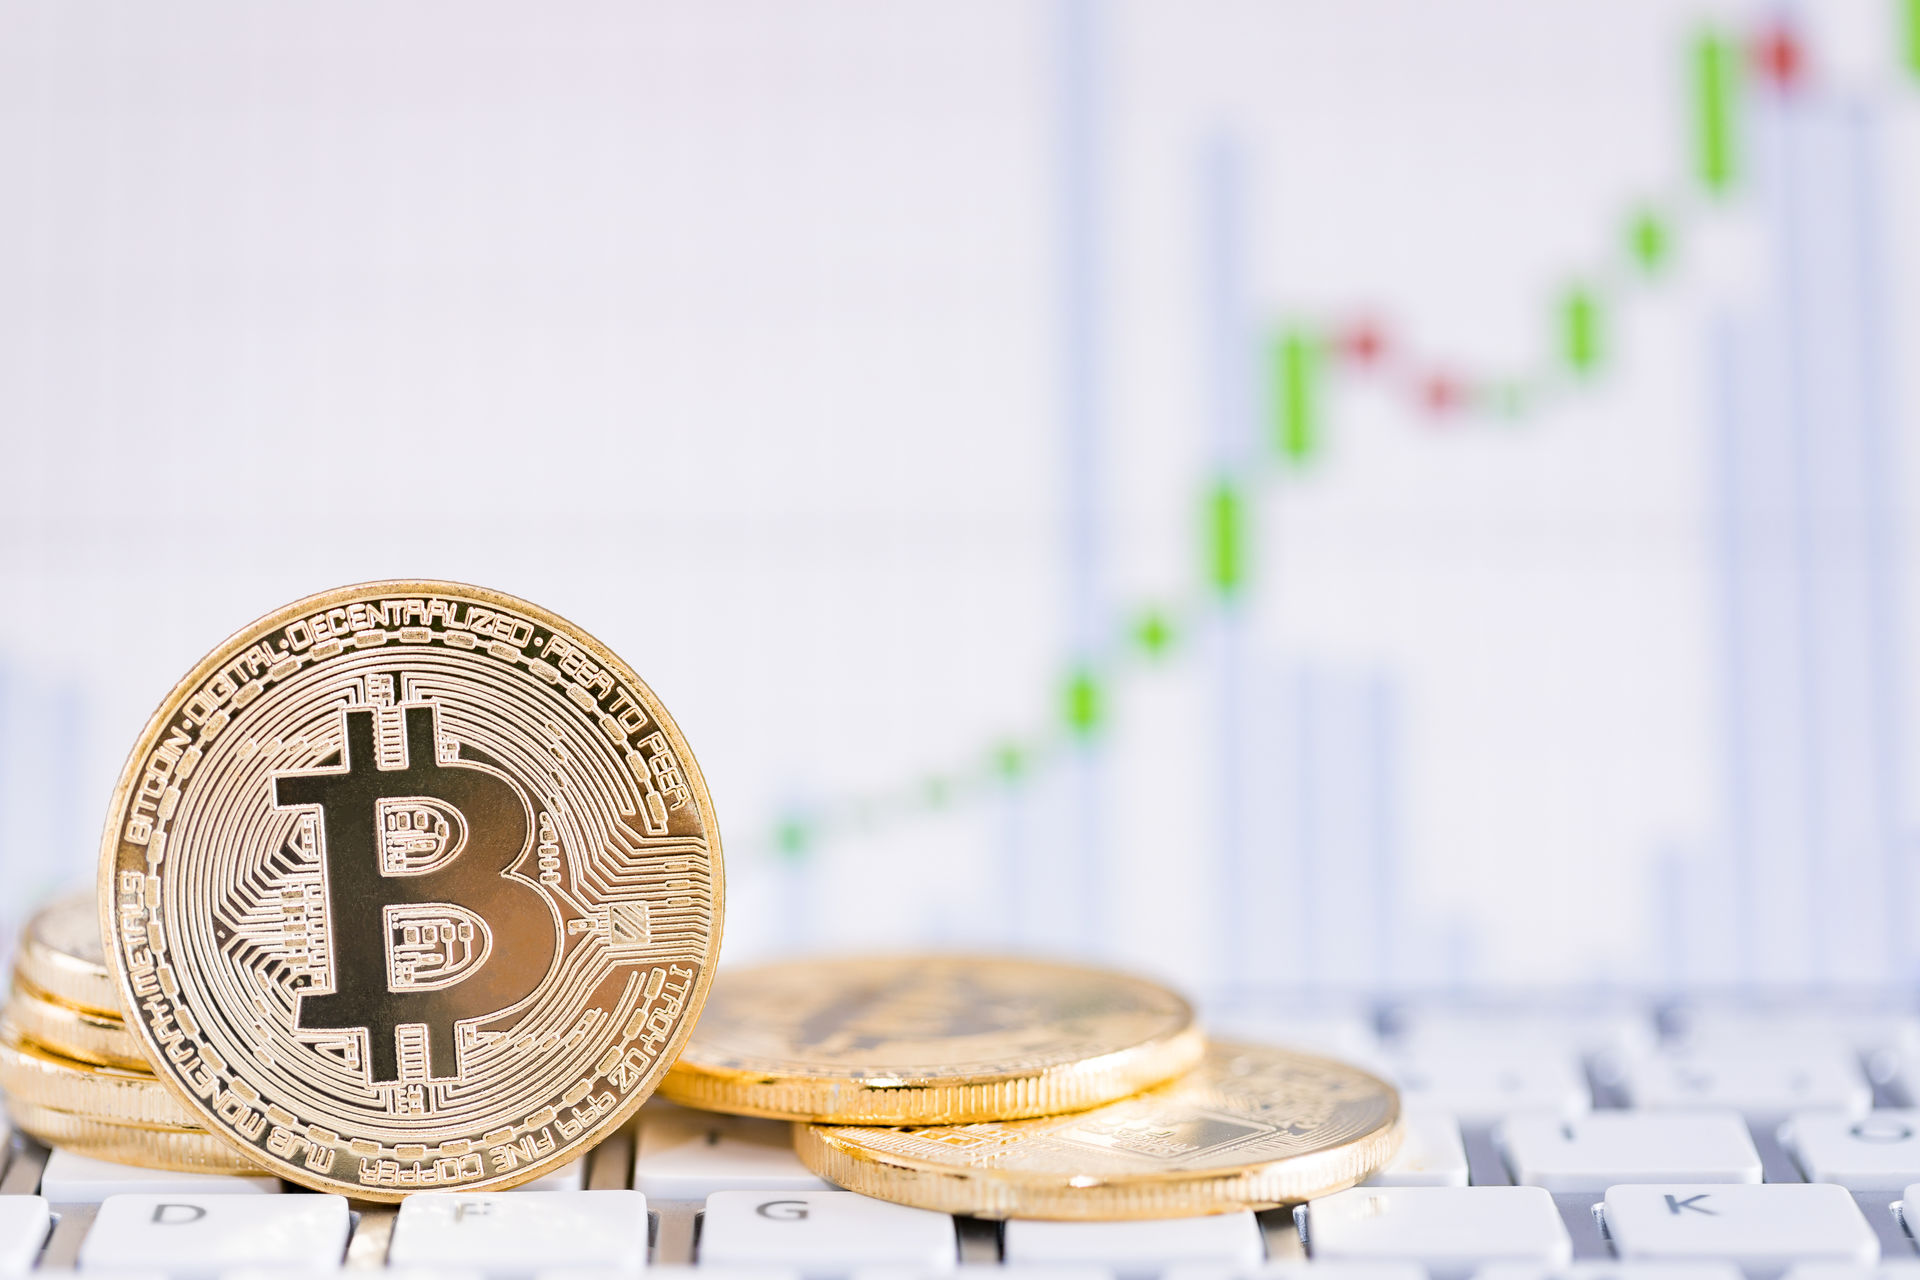 Cryptocurrency – So what?